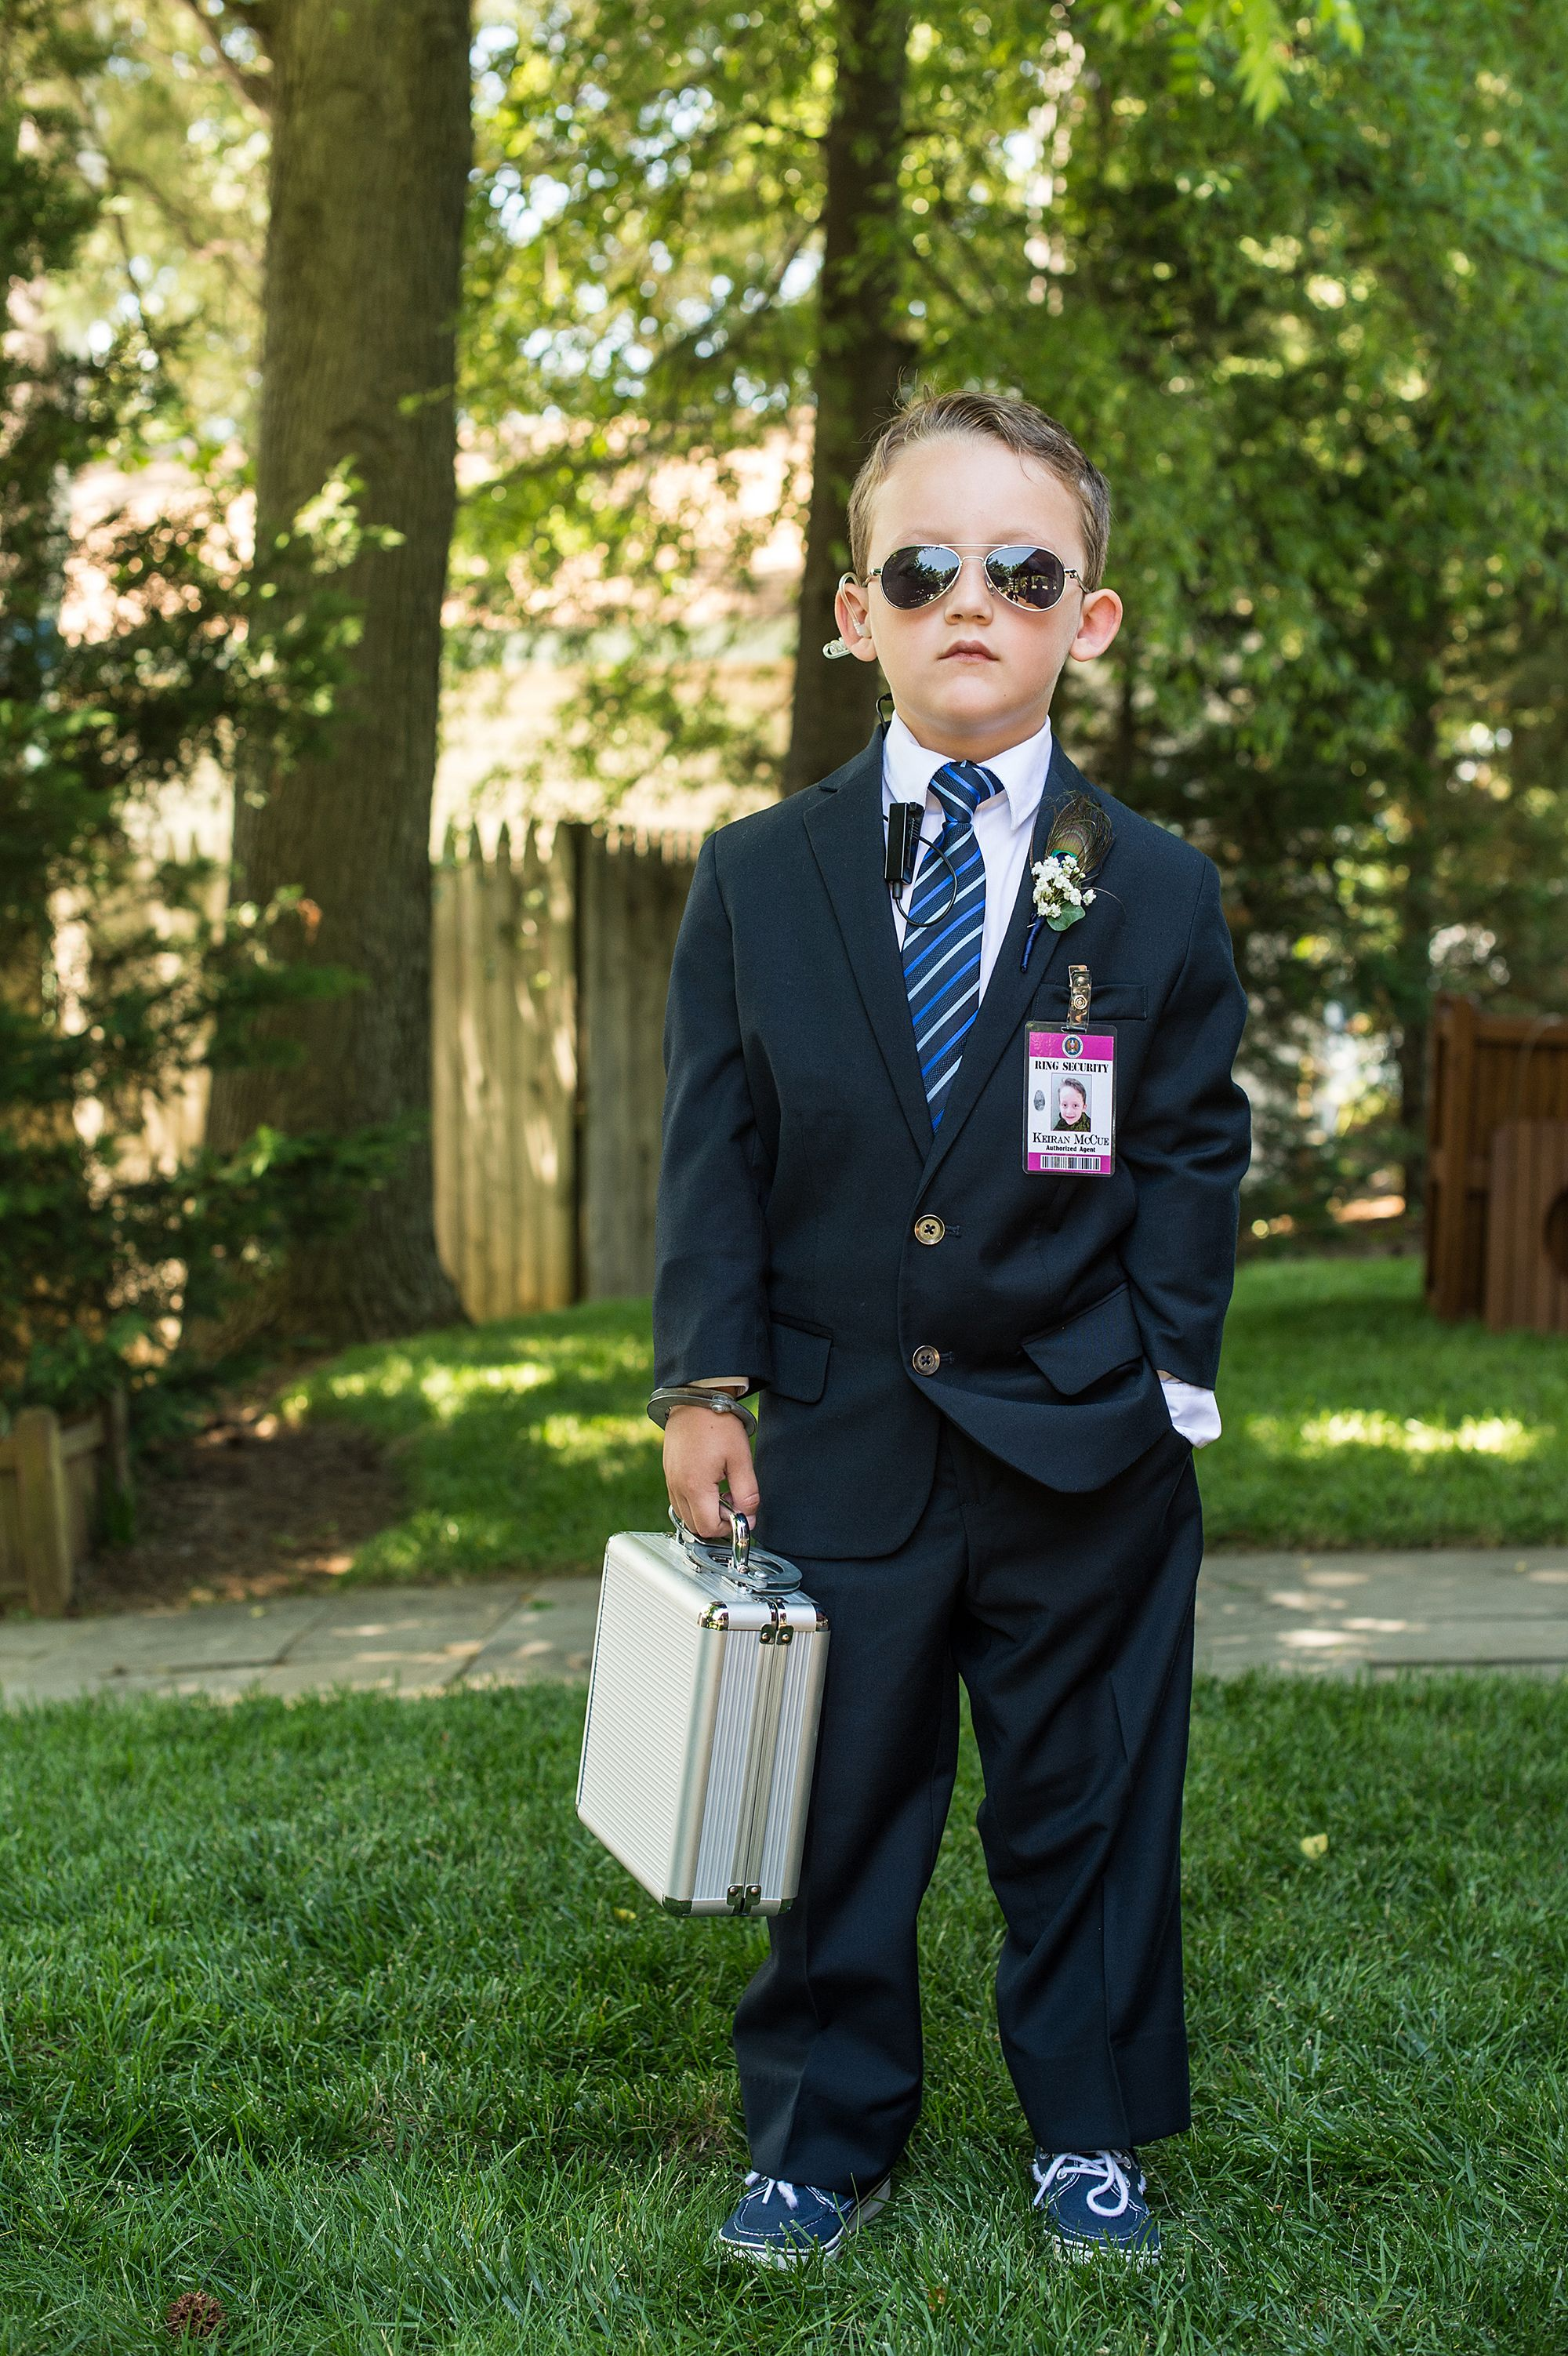 The Ring Bearer Was Dressed To Look Like A Secret Service Agent He Wore Aviator Gles An Earpiece And Badge That Read Security